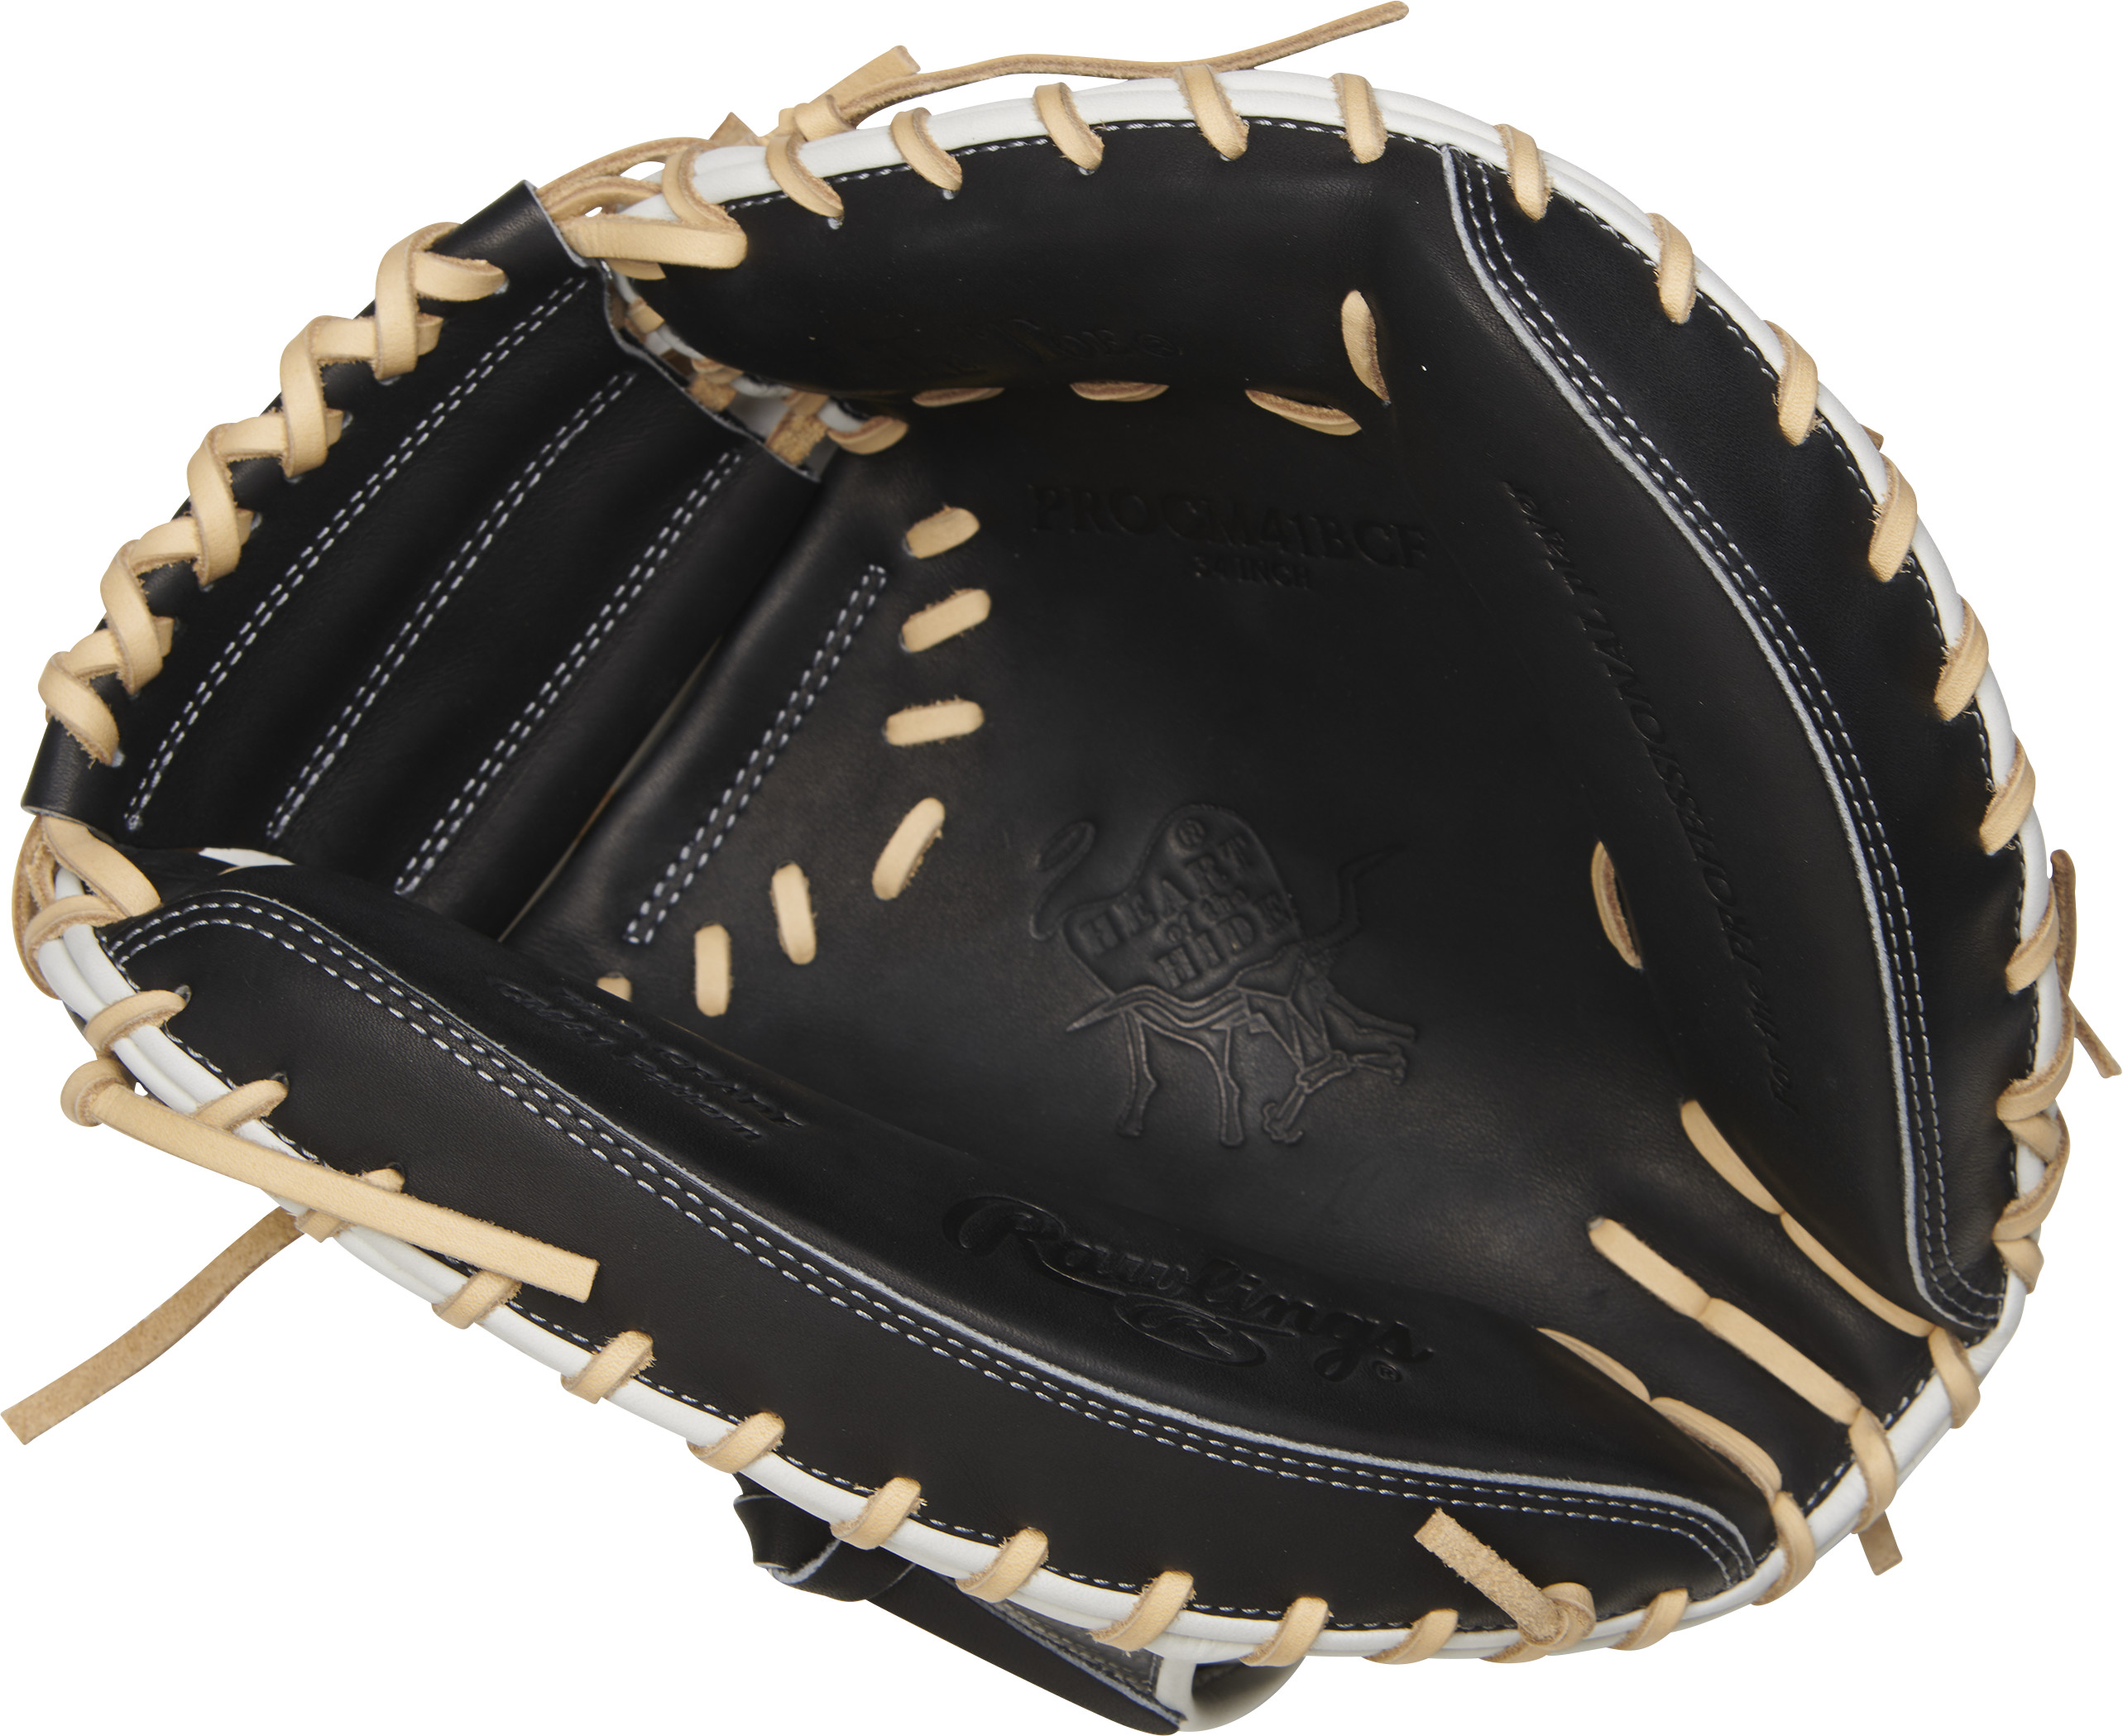 http://www.bestbatdeals.com/images/gloves/rawlings/PROCM41BCF-1.jpg